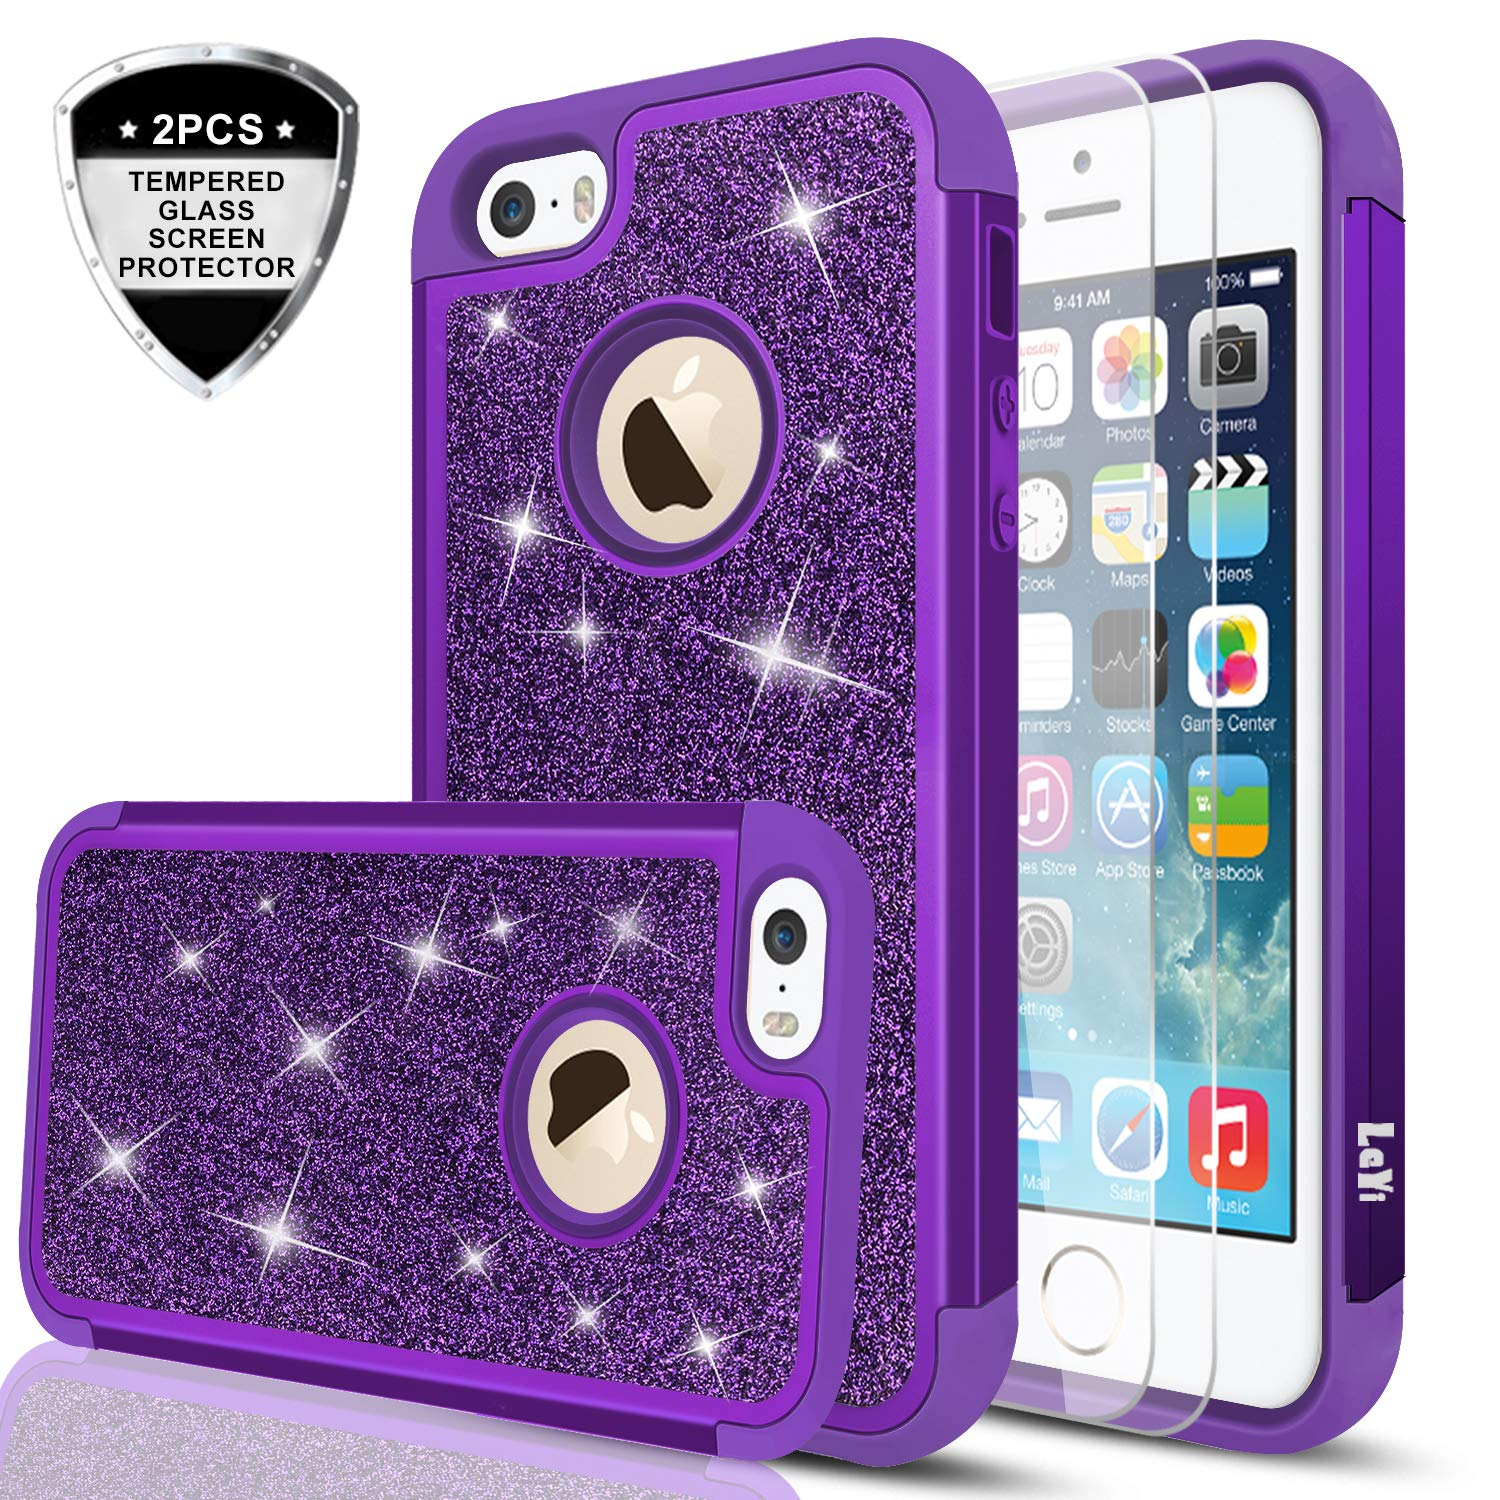 iPhone 5S Case, iPhone 5 /iPhone SE/iPhone SE 2 Case with Tempered Glass Screen Protector [2 Pack], LeYi Glitter Bling Girls Women Heavy Duty Protective Case for iPhone 5S/5/SE/SE 2 TP Rose Gold 4334971251